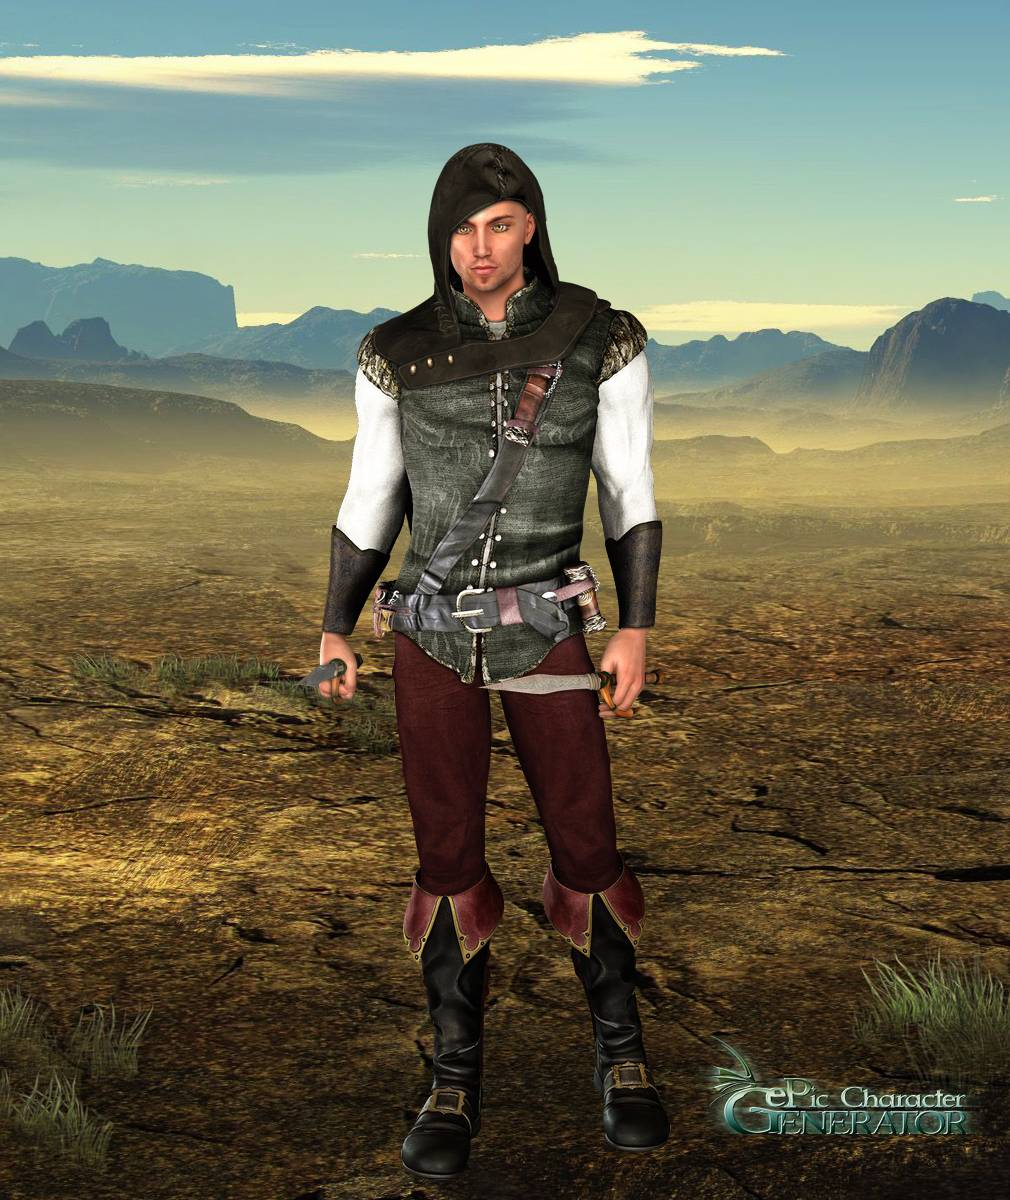 ePic Character Generator Season 2 Male Adventurer Screenshot 12